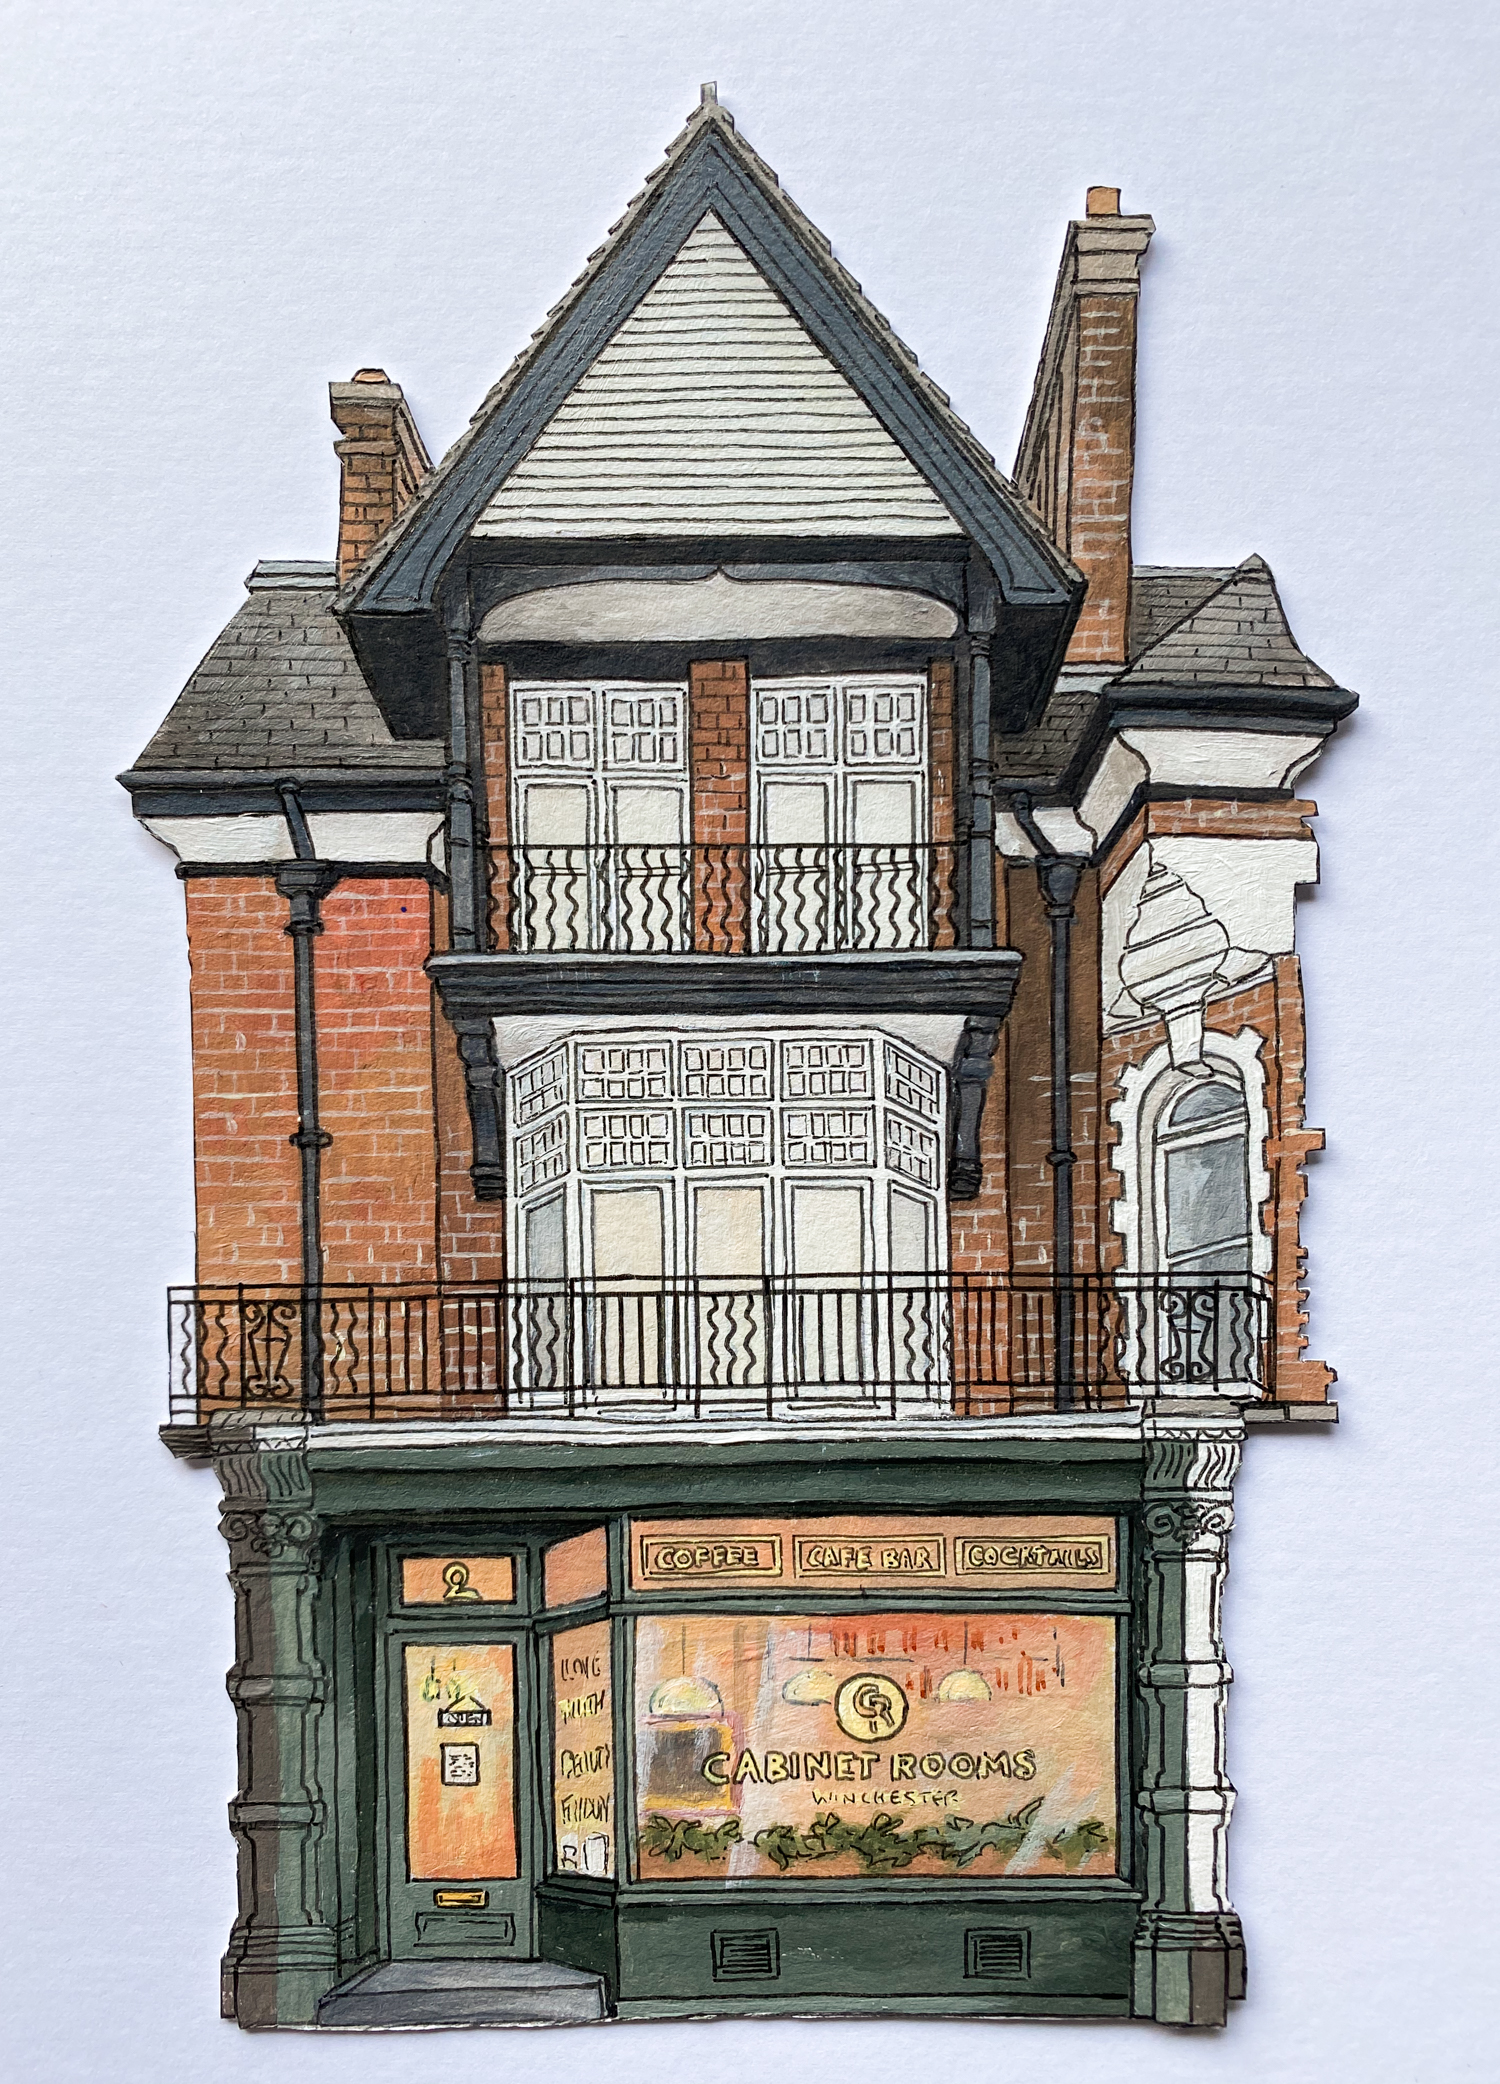 The Cabinet Rooms - Winchester Independents - Illustration by Jonathan Chapman